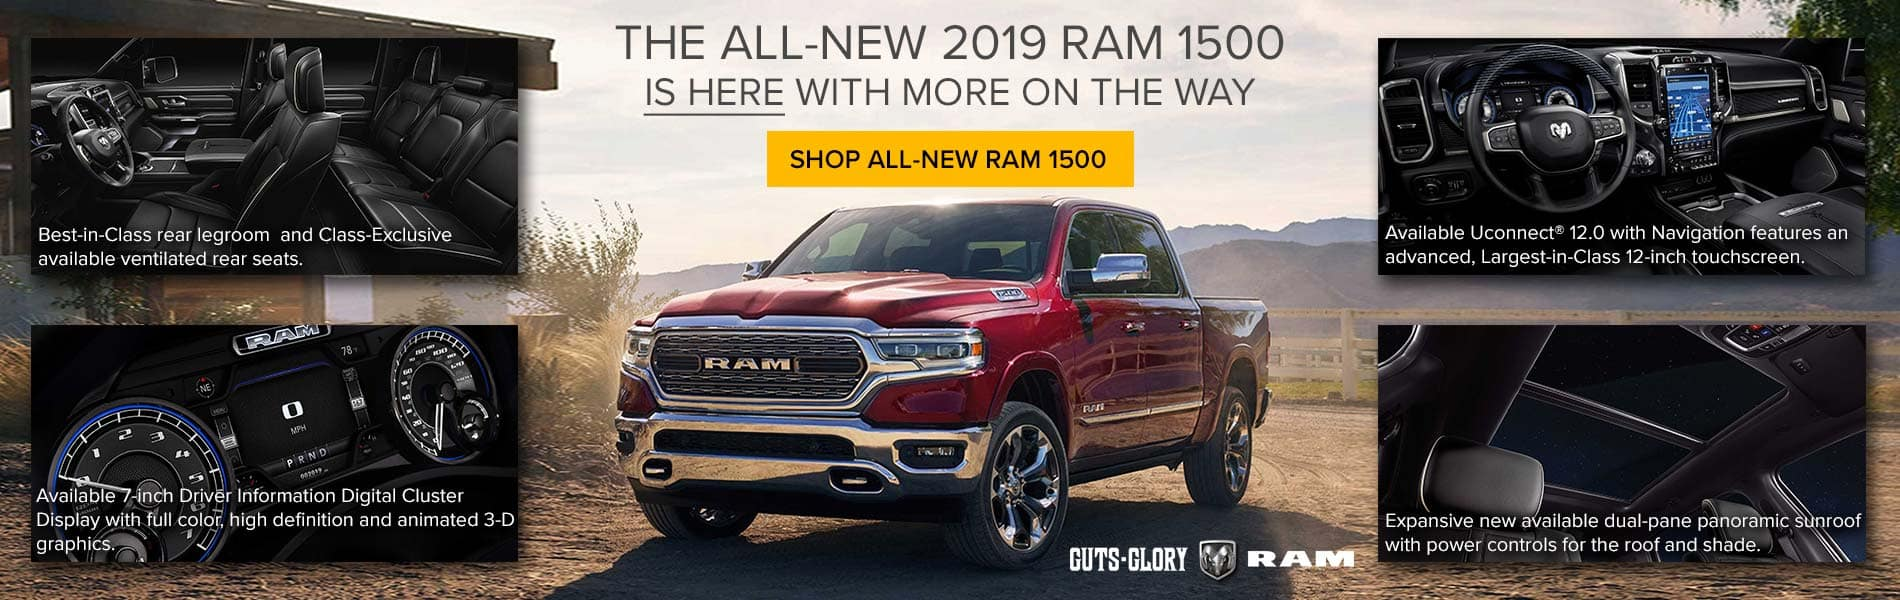 The all-new 2019 RAM 1500 is now here with more on the way.